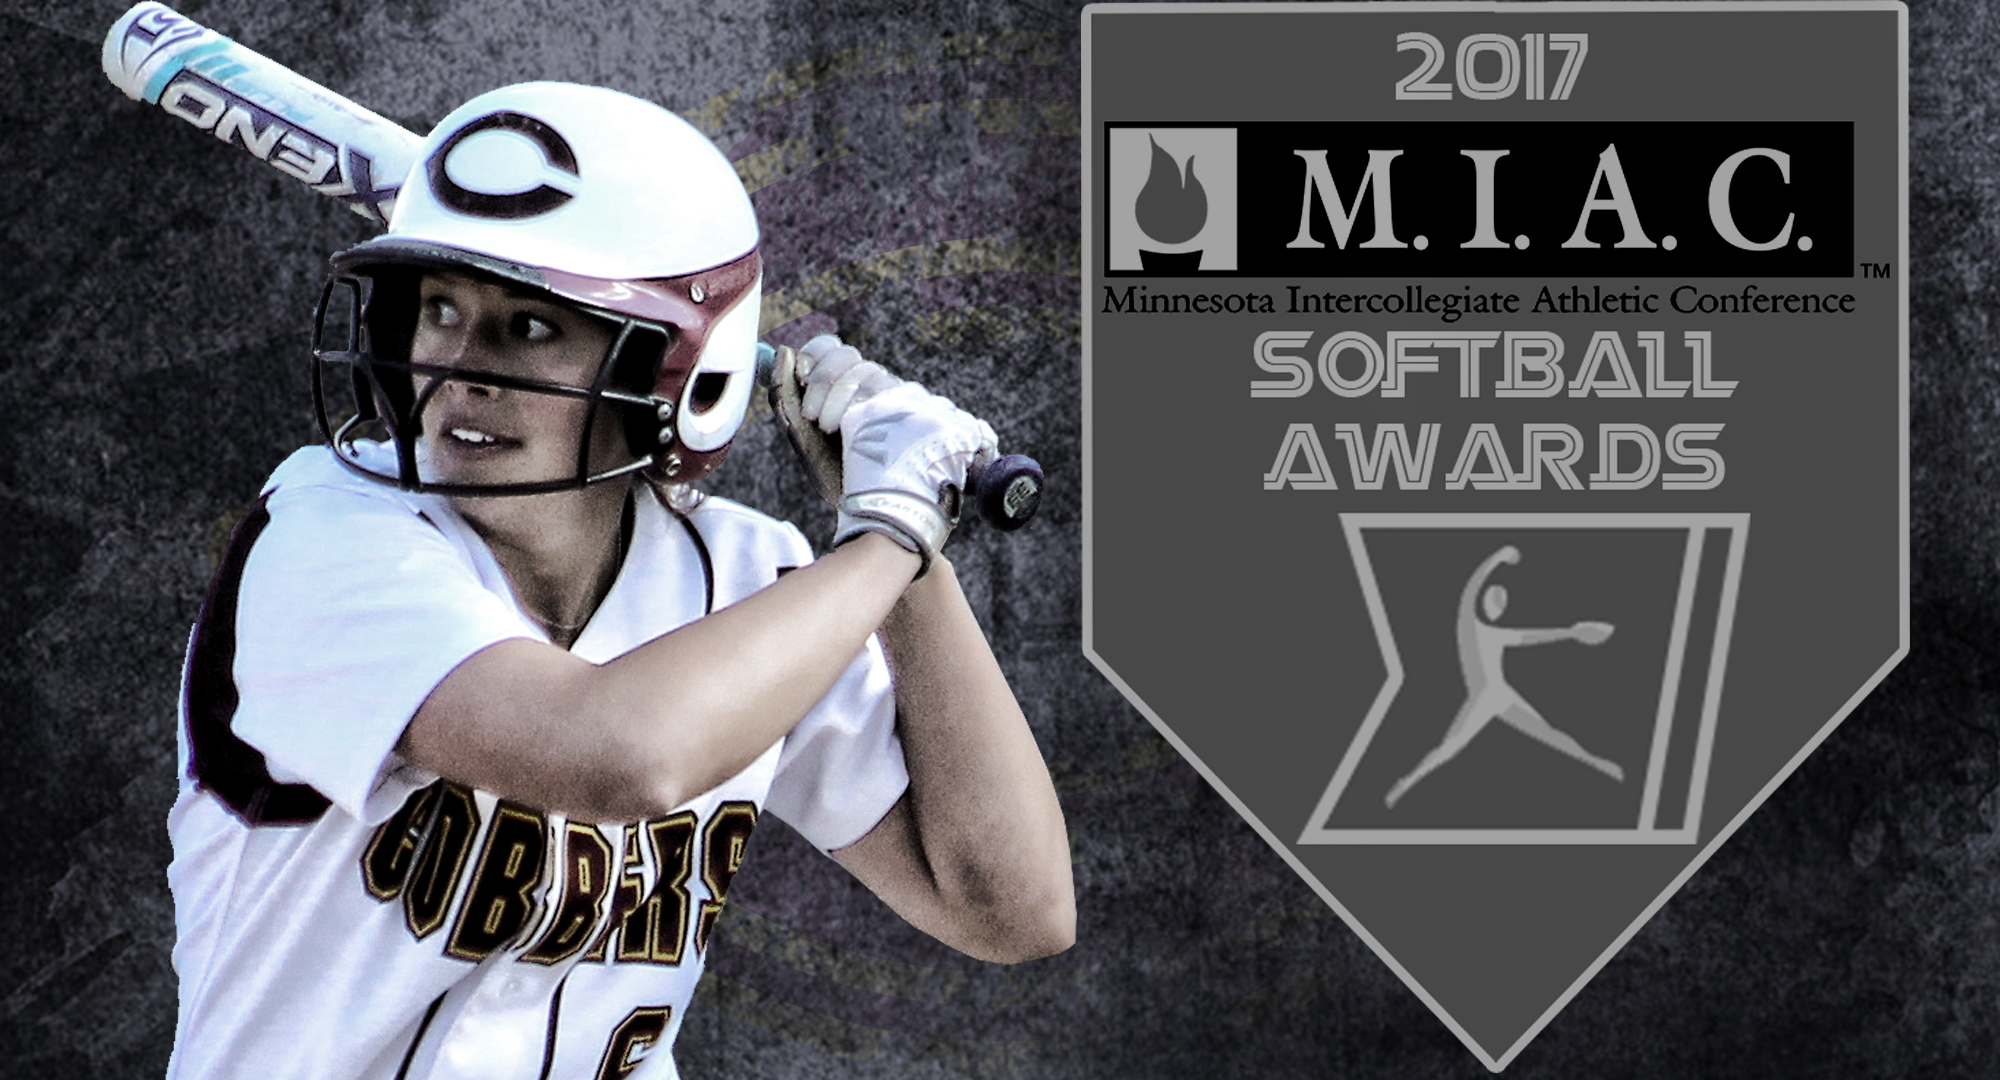 Madison Little led Concordia in at-bats, hits and stolen bases and didn't make an error in the outfield.